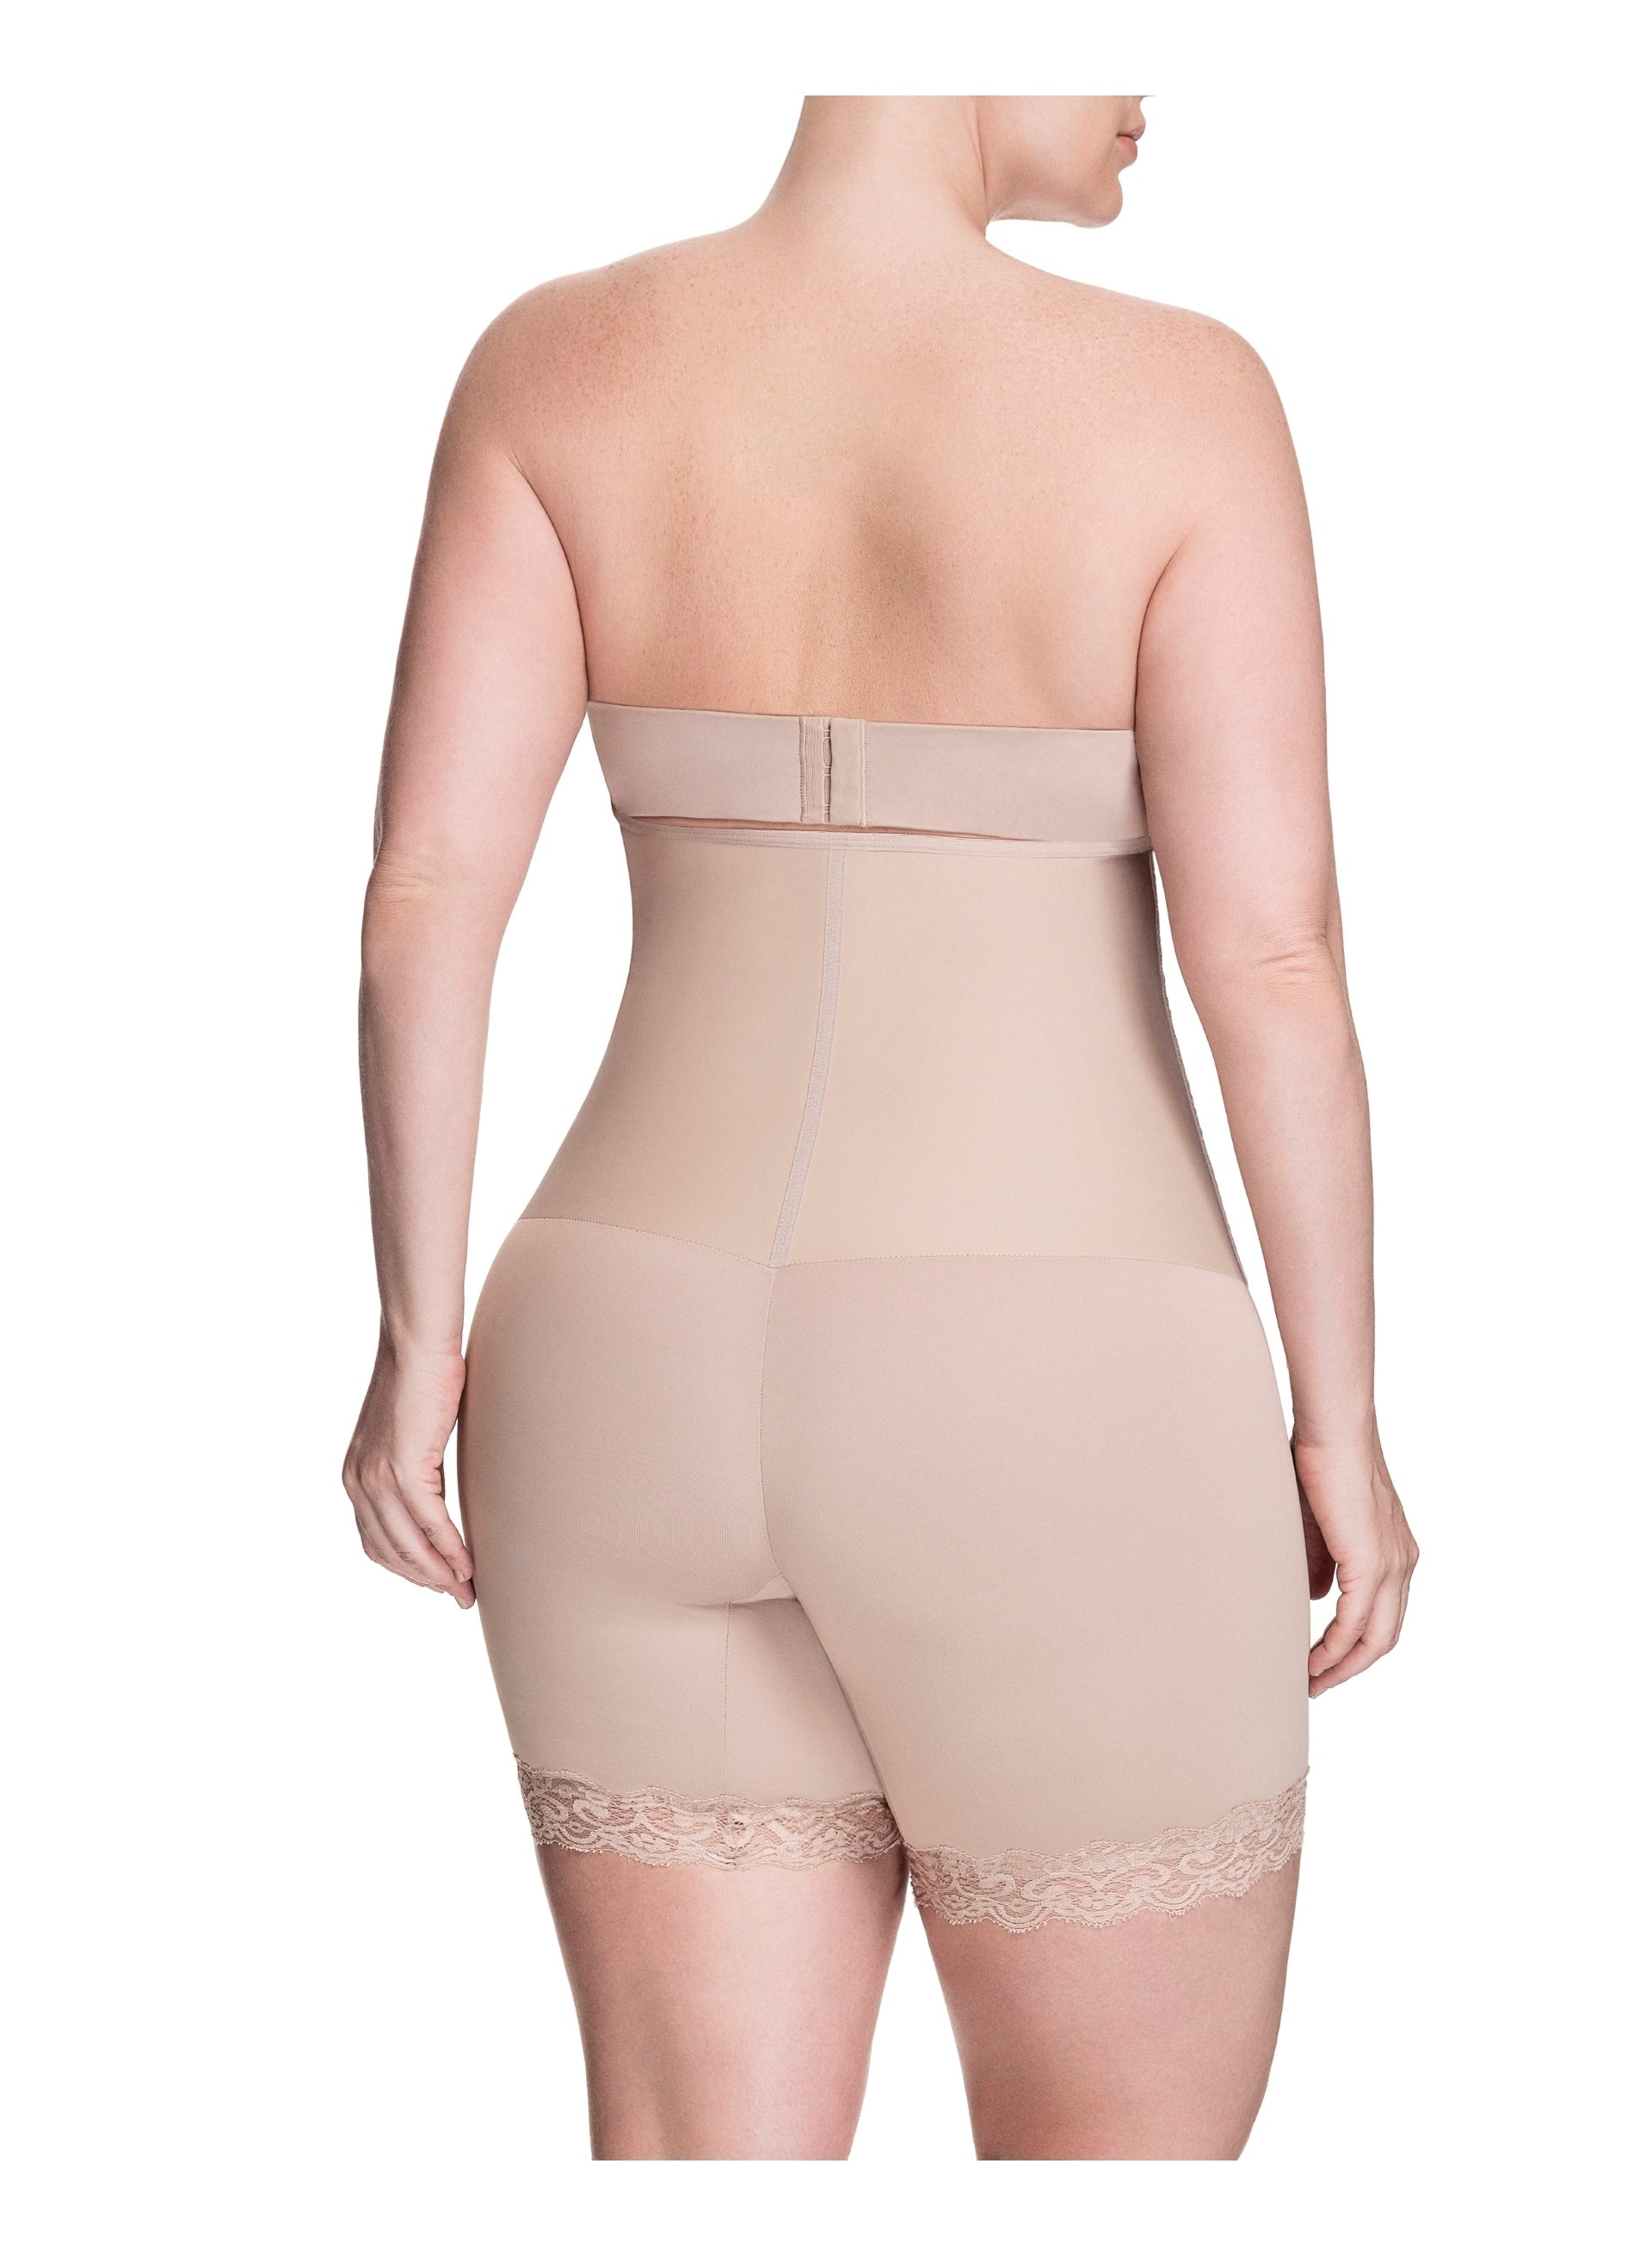 Squeem Sensual Secret High Waist Mid Thigh Short 26AB